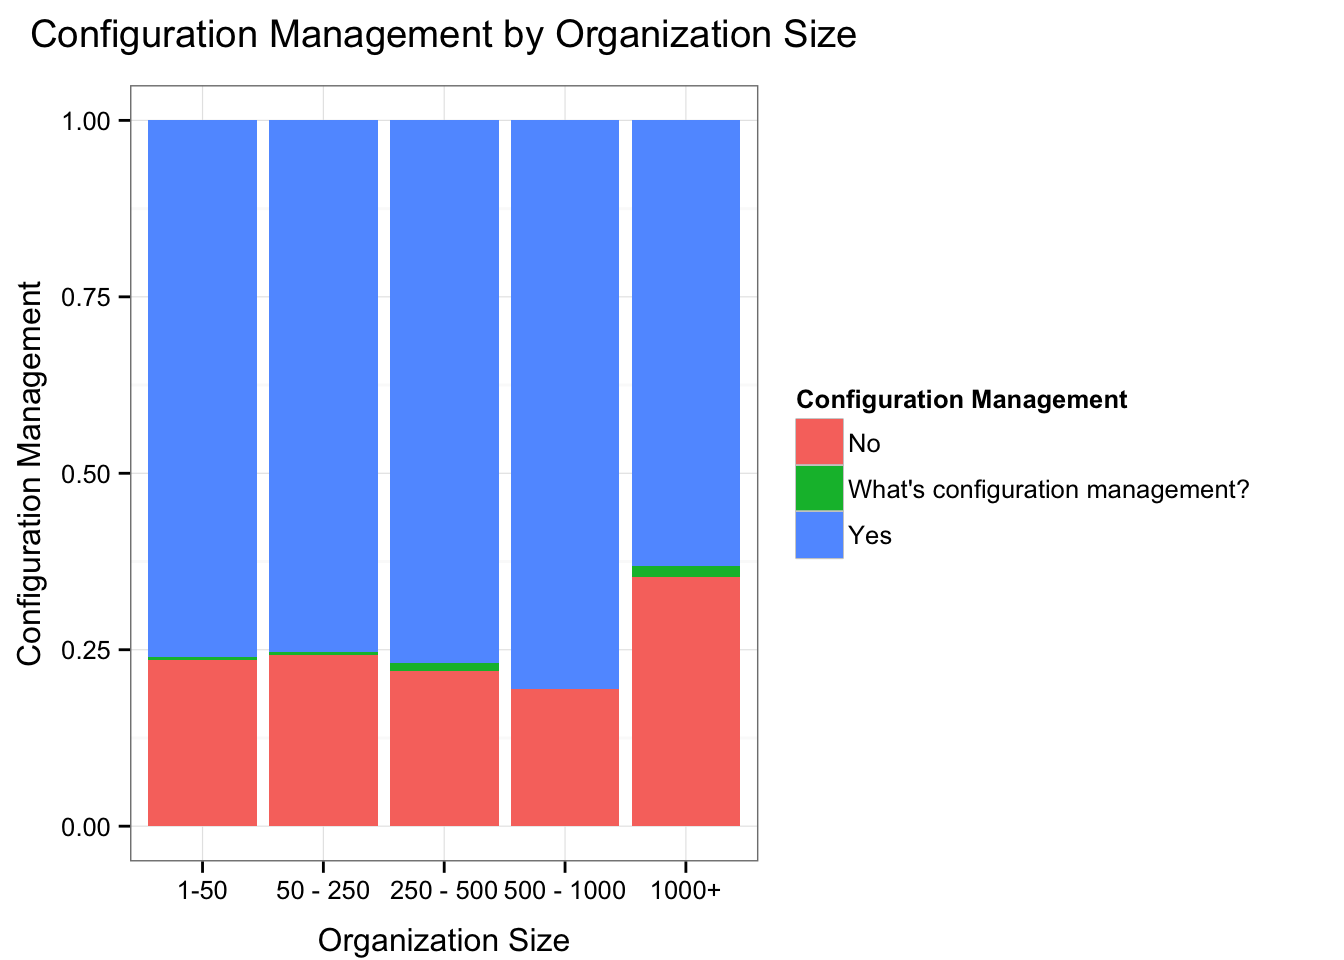 Use of Configuration Management by Org Size